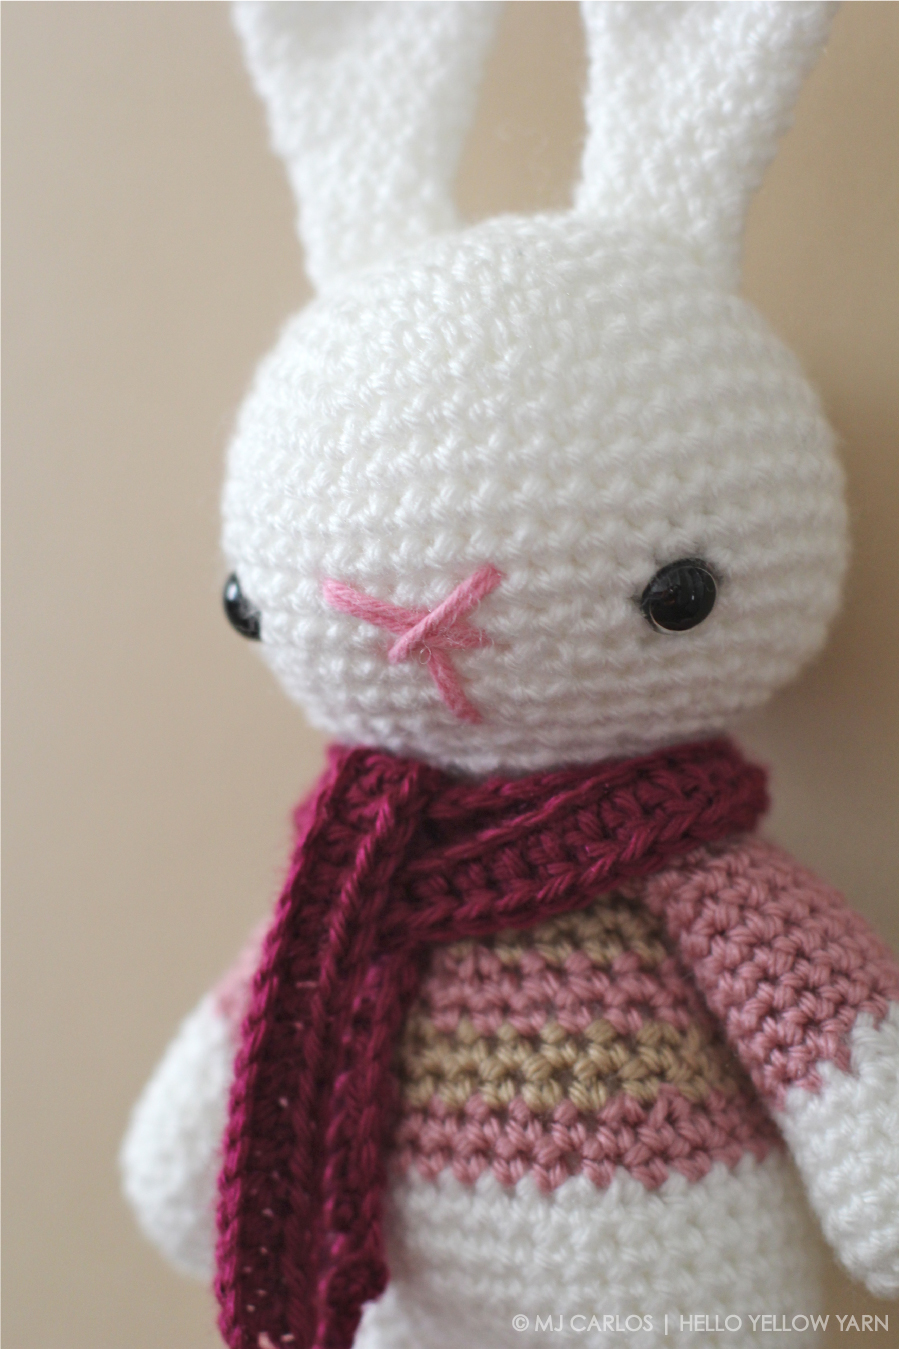 Amigurumi Bunny Free Crochet Patterns (With images) | Virkatut ... | 1349x899